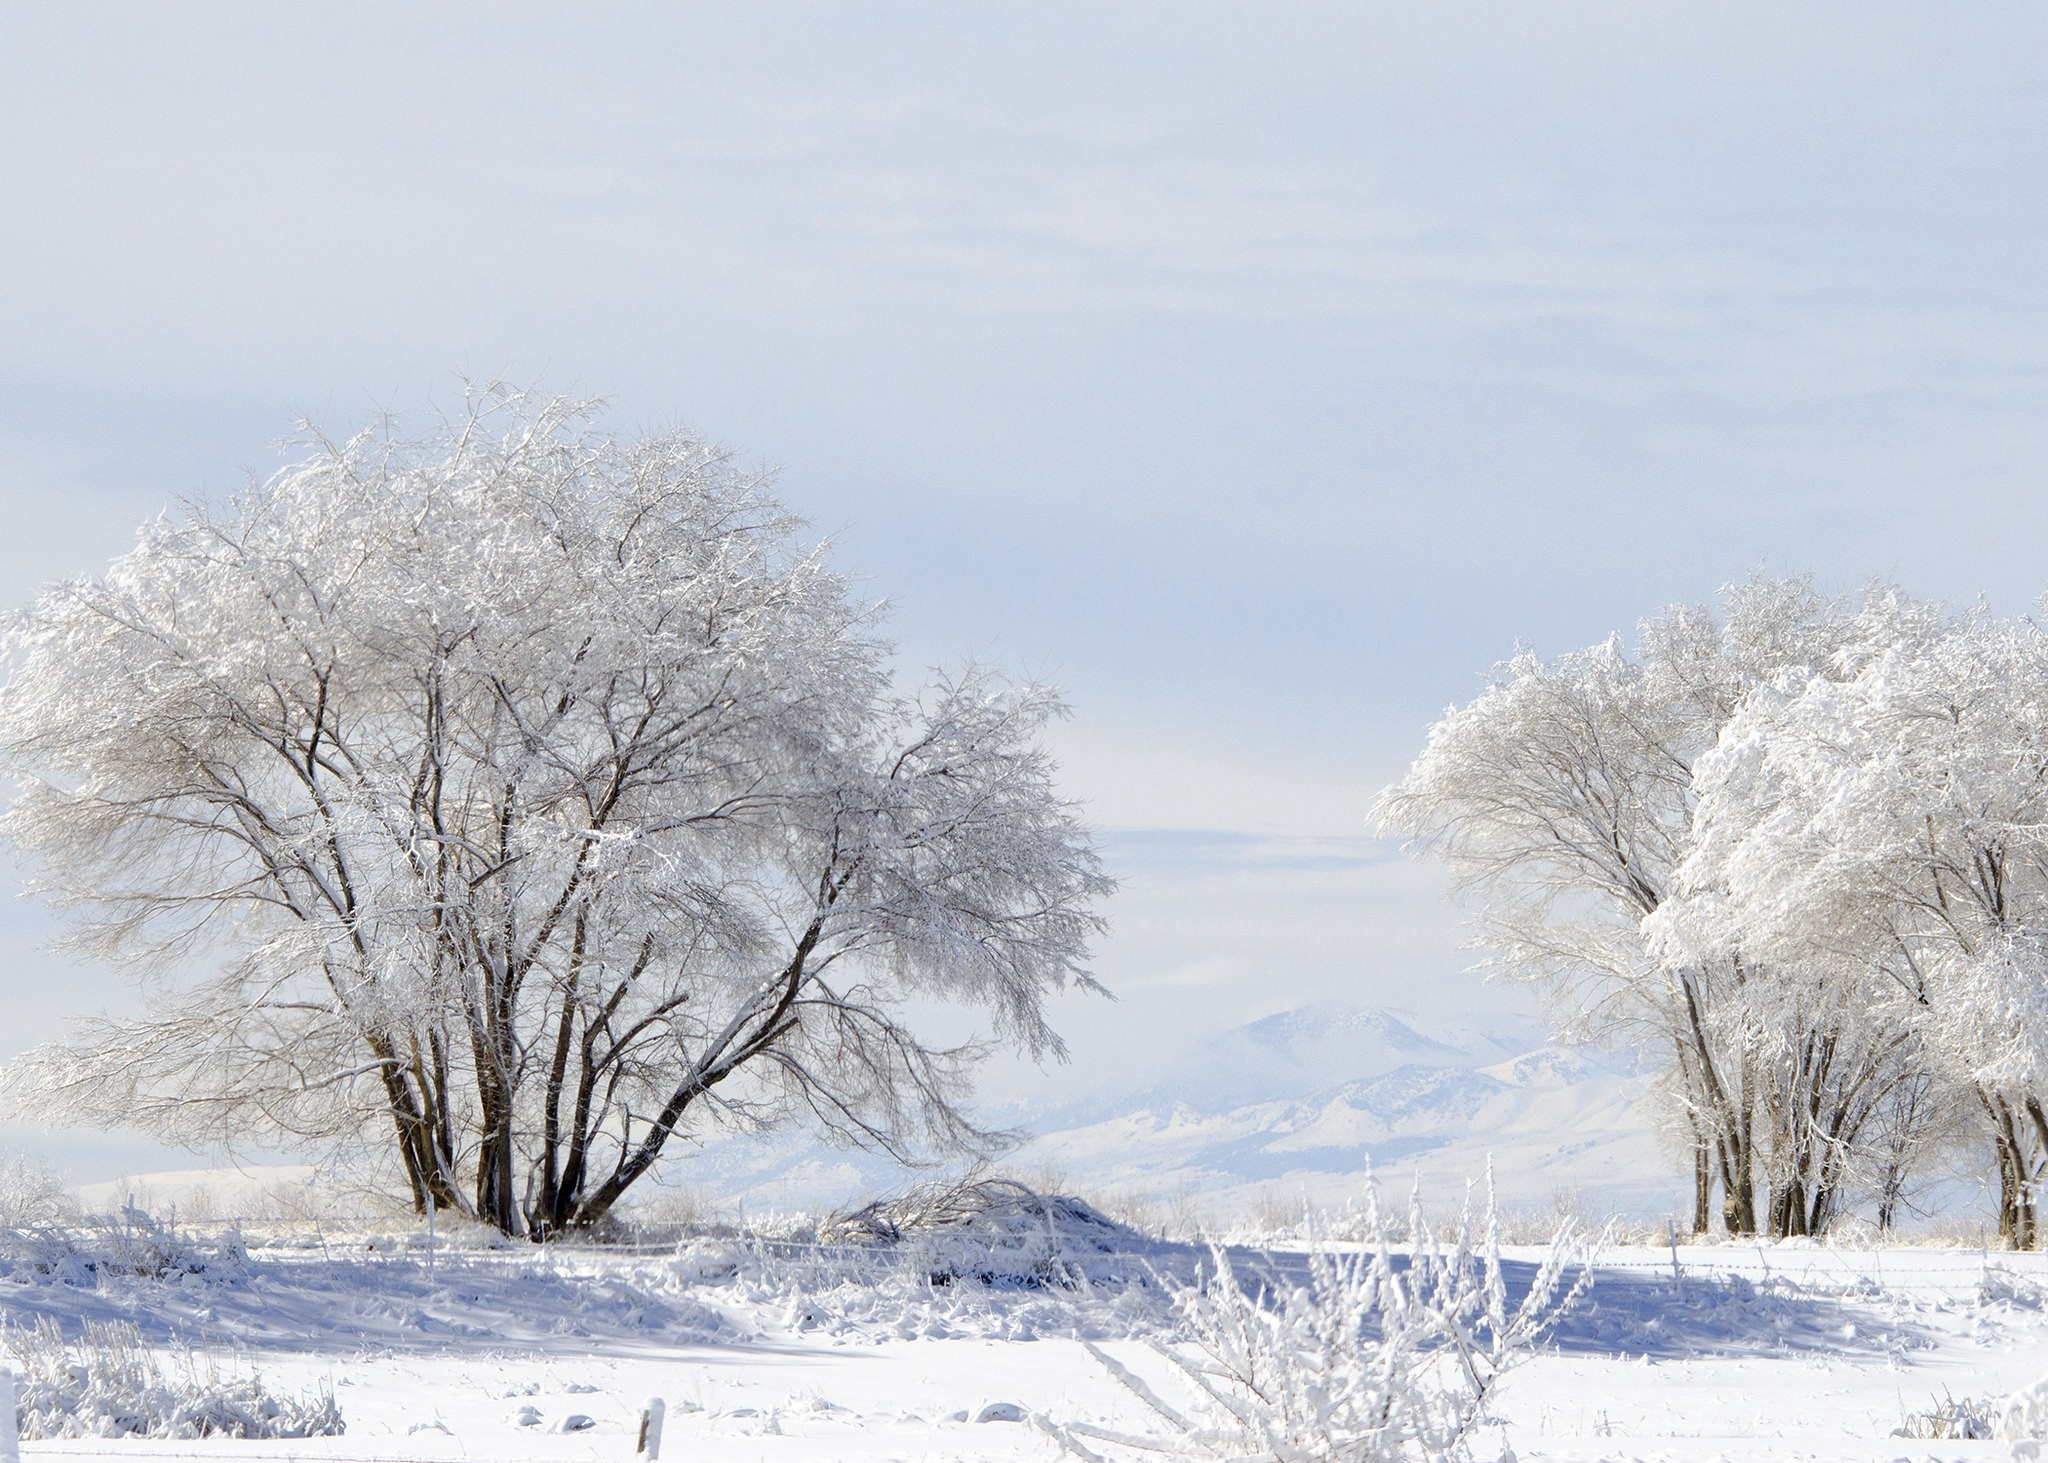 Landscape photo of trees and ground covered in snow